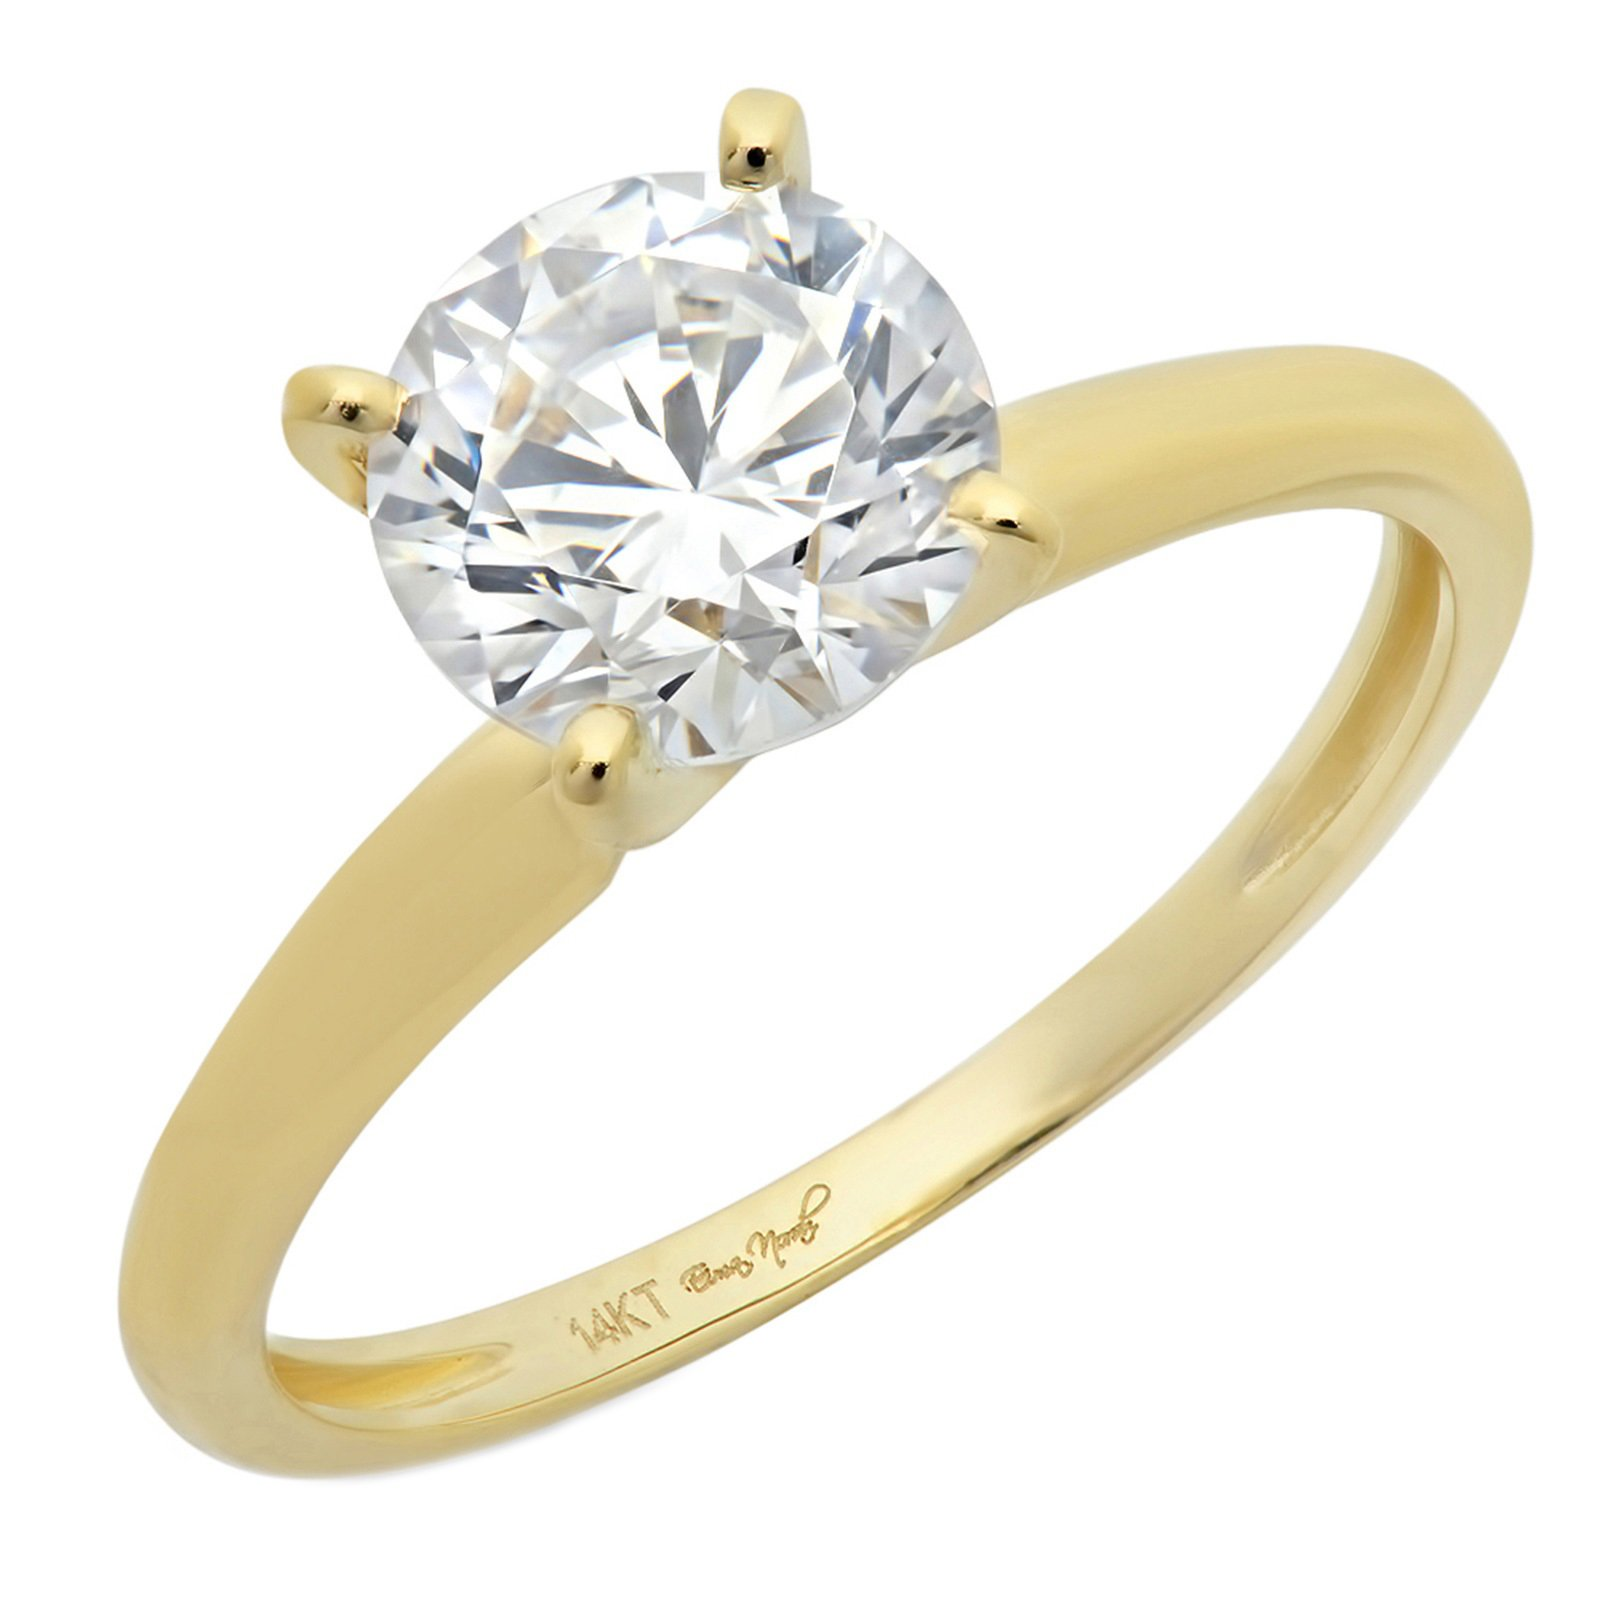 Clara Pucci 2.0 CT Brilliant Round Cut Simulated Diamond CZ Designer 4-Prong Solitaire Anniversary Promise Bridal Wedding Ring Solid 14k Yellow Gold by Clara Pucci